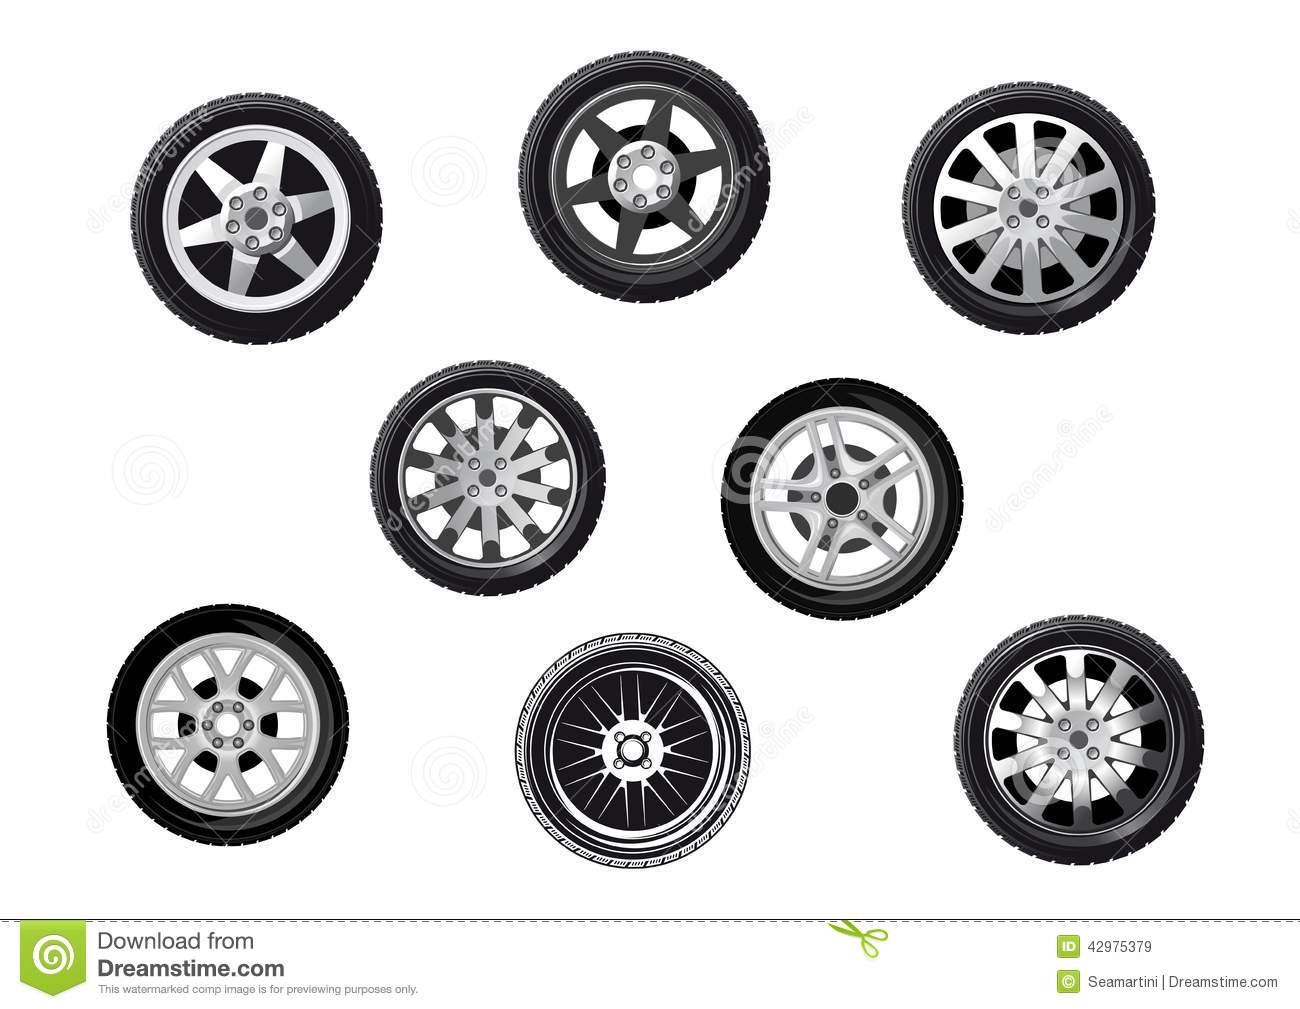 81277938 further 5 Tire Rotation 33537 as well Download Bolens 13am762f765 Service Manual 6815880 together with RepairGuideContent also 3 Wheel. on tire tread diagram